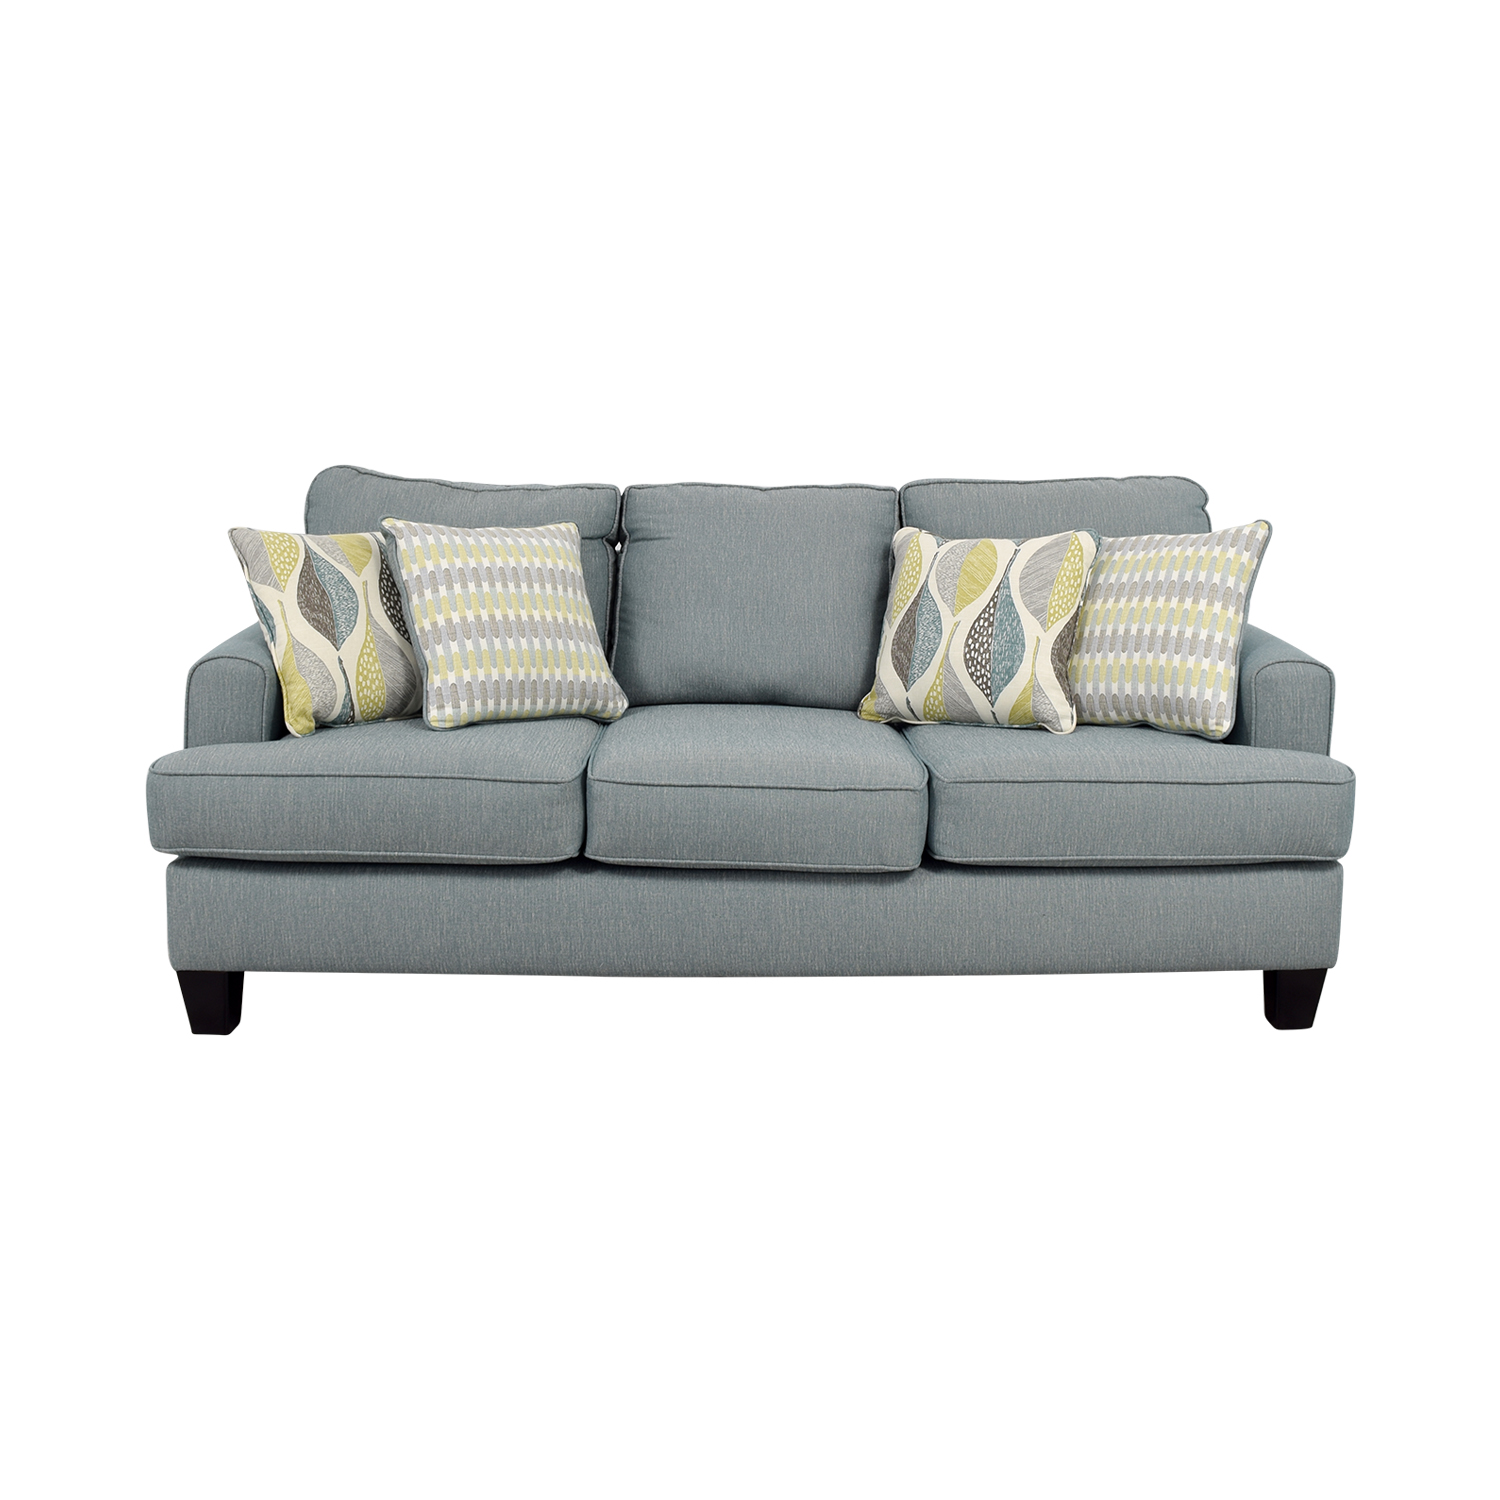 Raymour & Flanigan Raymour & Flanigan Blue Fabric Three-Cushion Couch for sale